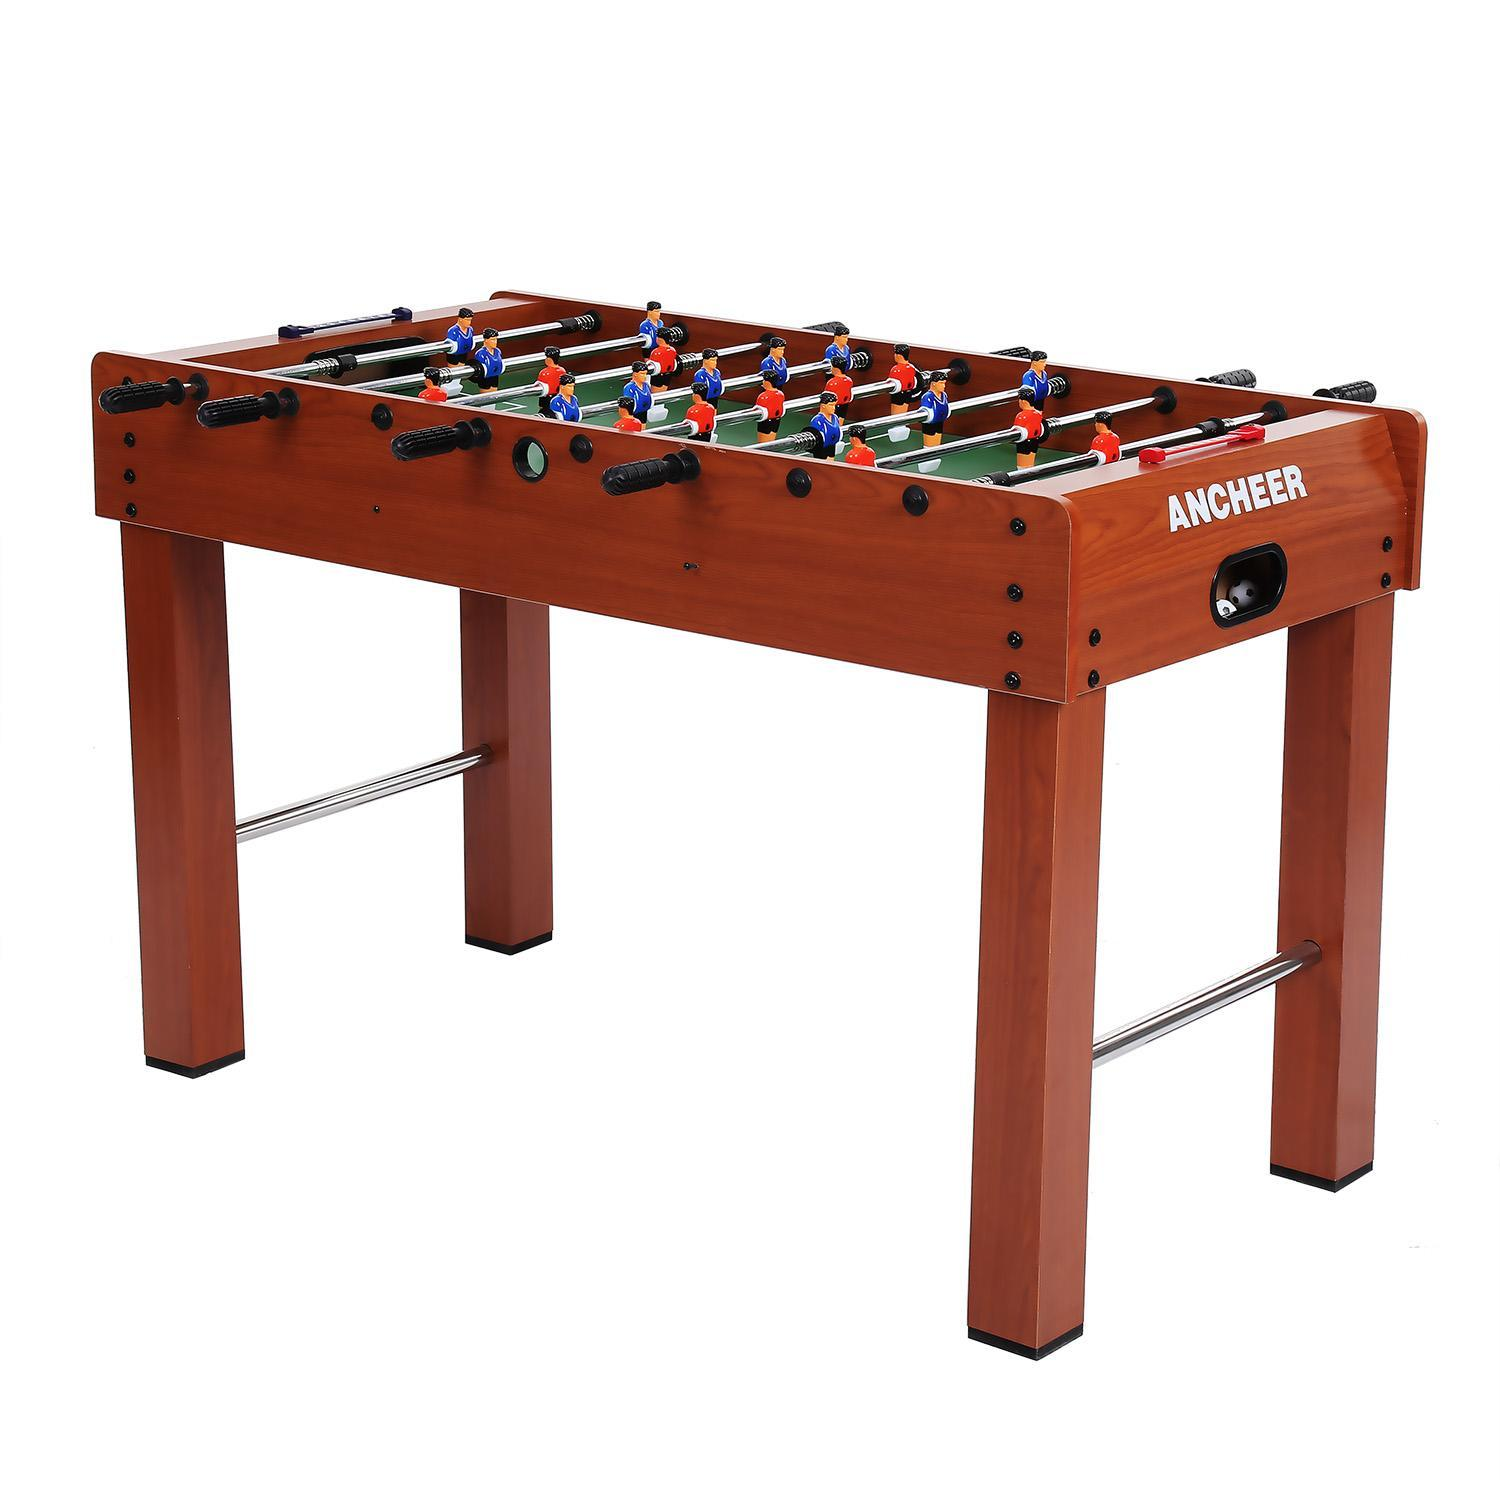 Wonderful Table Soccer Game Table Arcade Game With Free Ball 48inch